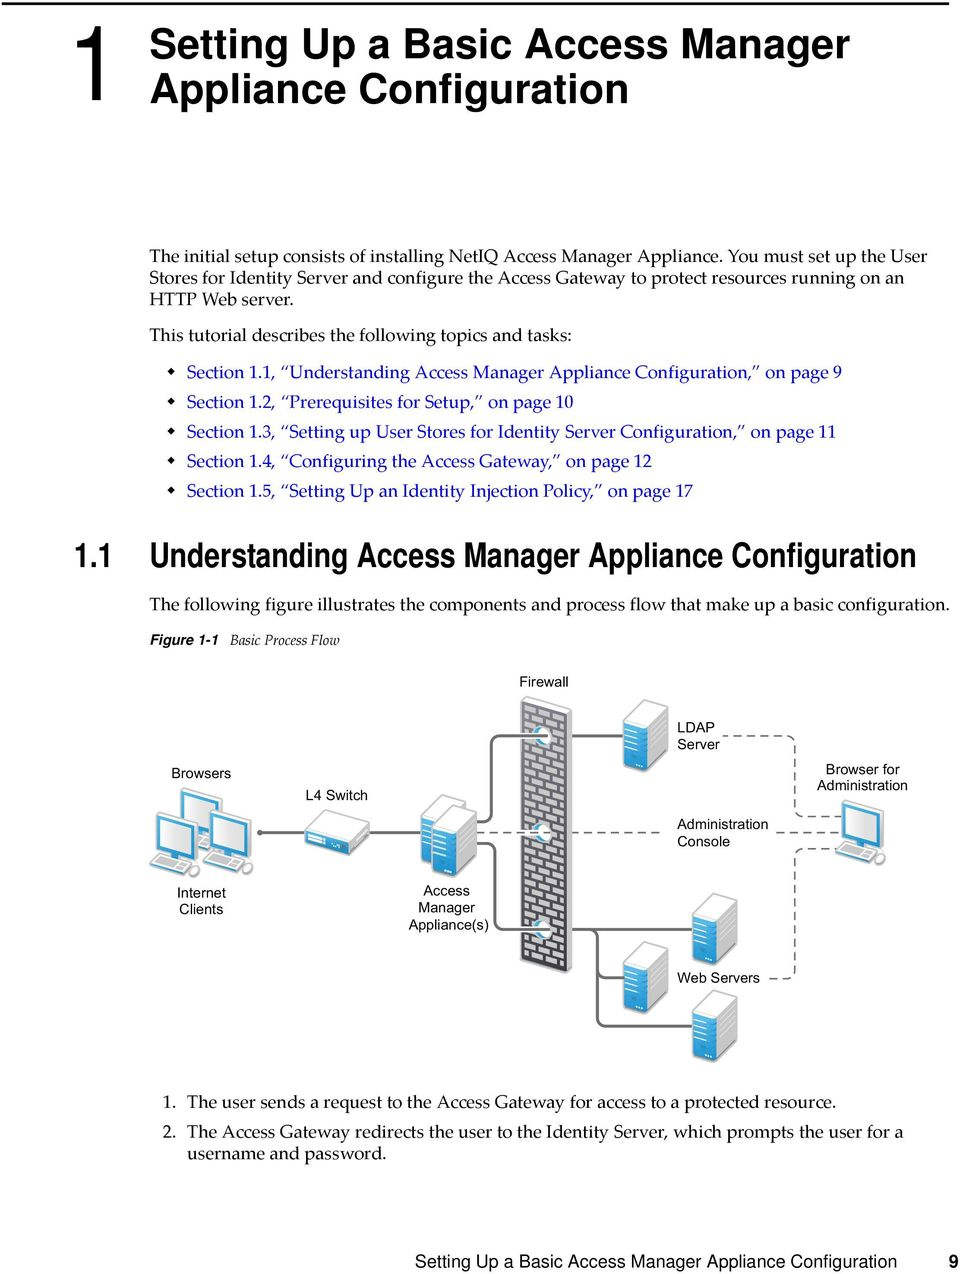 This tutorial describes the following topics and tasks: Section 1.1, Understanding Access Manager Appliance Configuration, on page 9 Section 1.2, Prerequisites for Setup, on page 10 Section 1.